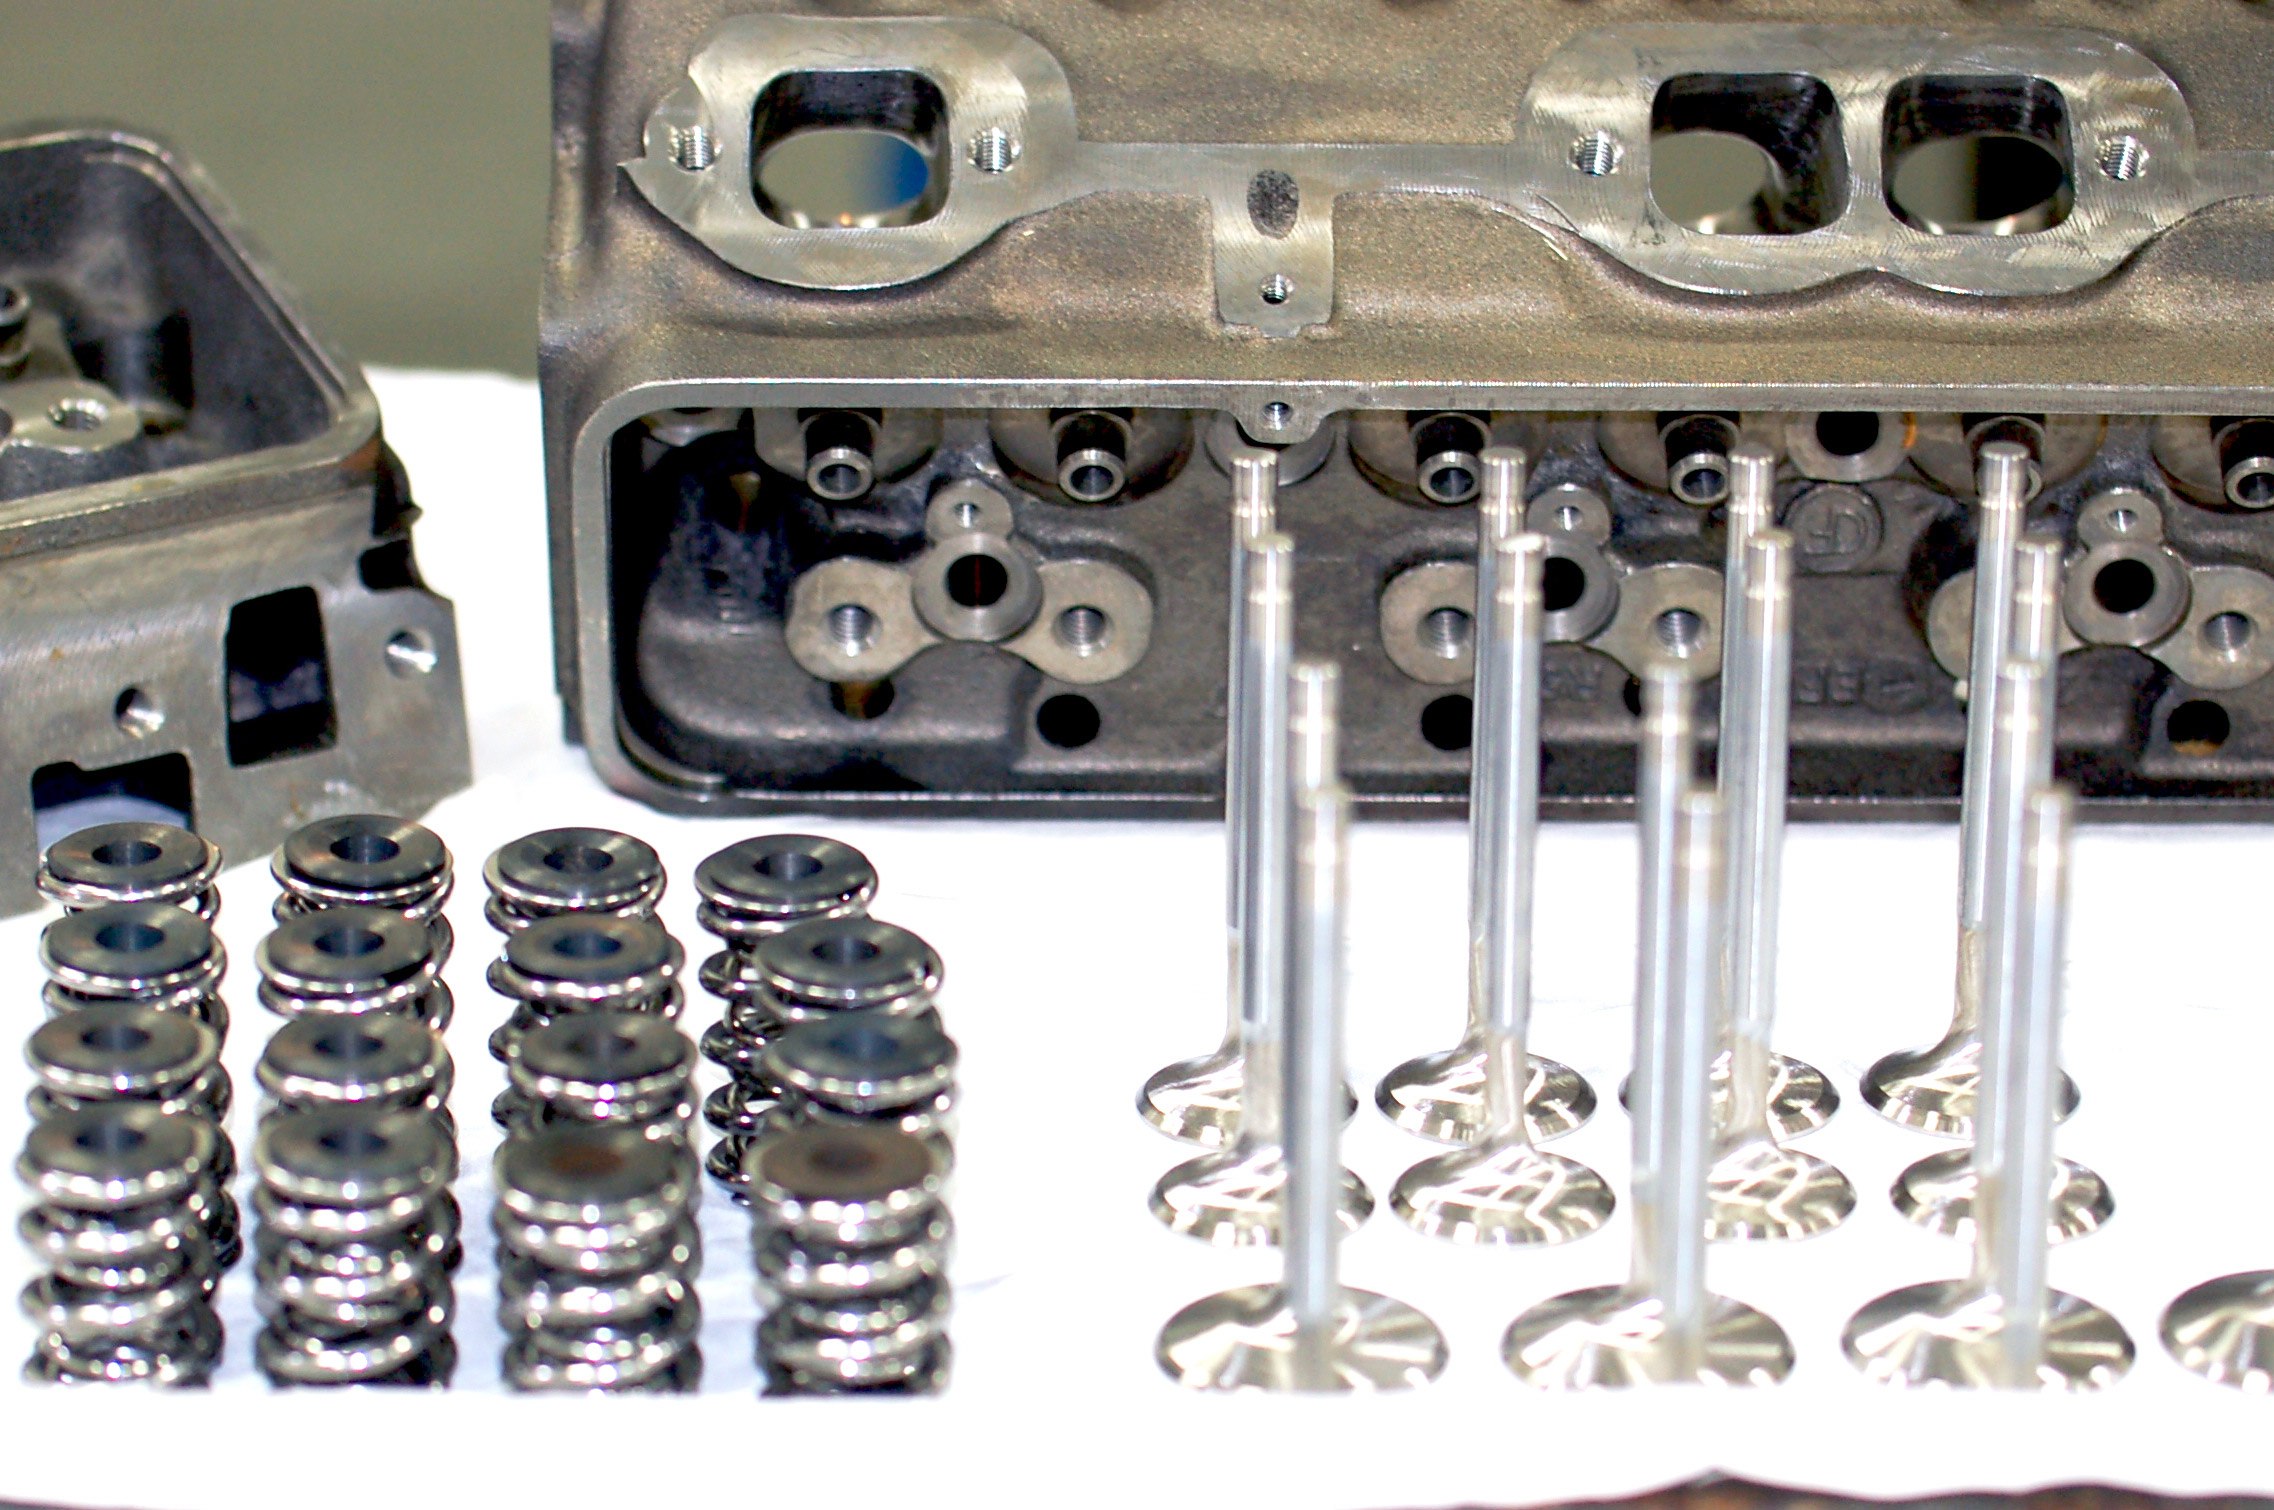 When you disassemble your motor for a rebuild, it is a good time to check the clearances when the valve is at full compression, or full lift, and the seat pressure or load at the same height. Record the spring length at full open position for each valvespring and re-create those heights on the valvespring rater.